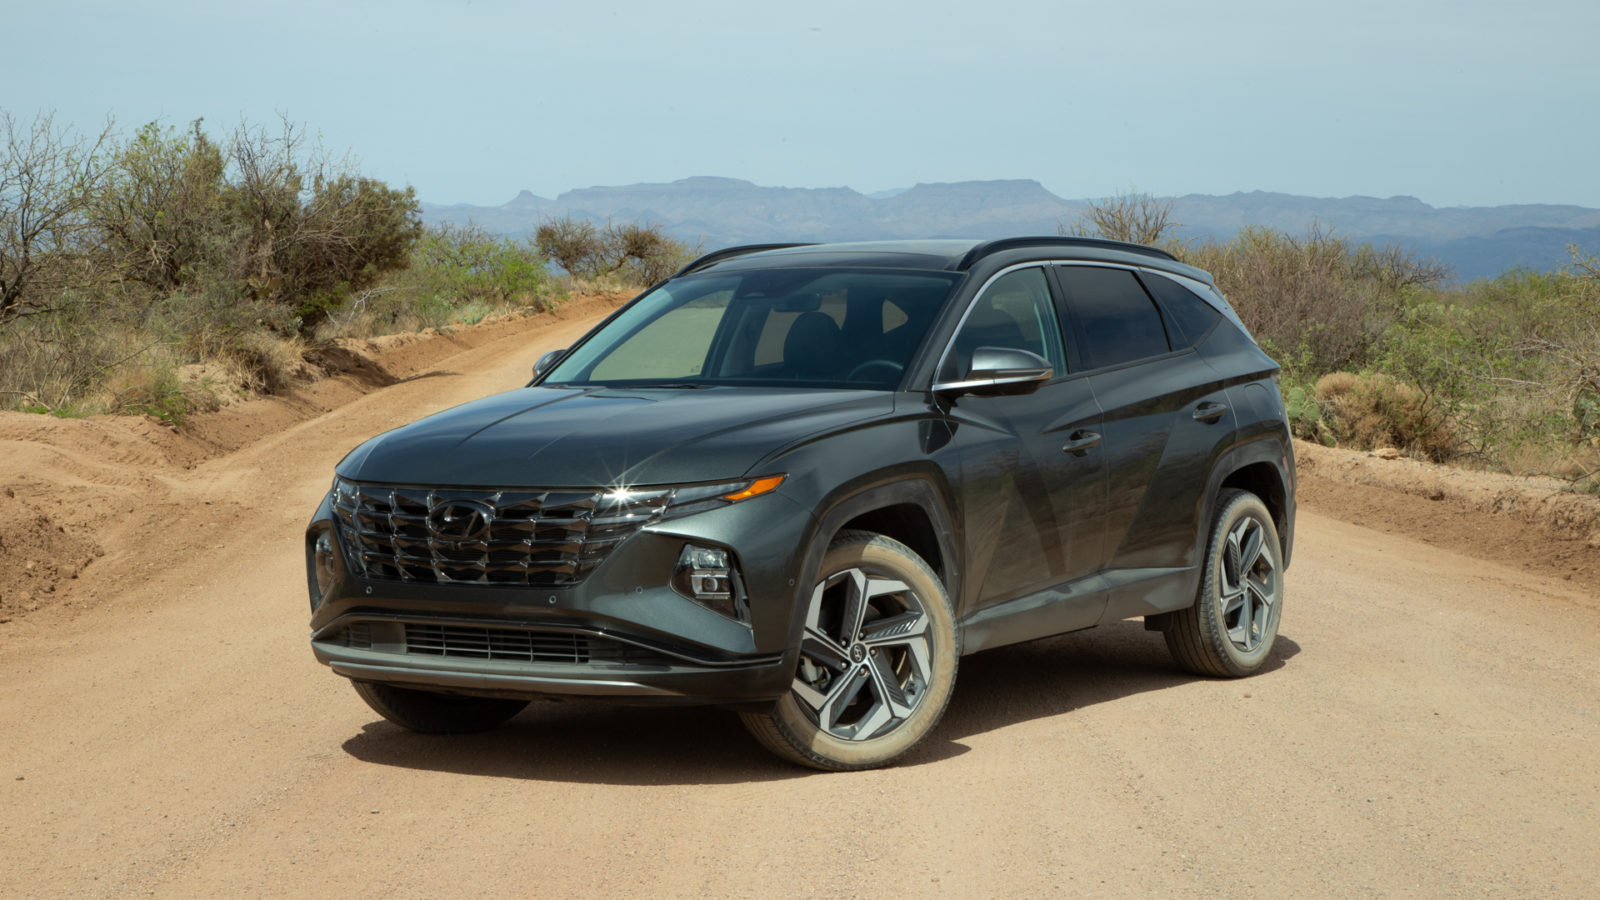 first-drive:-2022-hyundai-tucson-electrifies-its-looks-and-powertrain